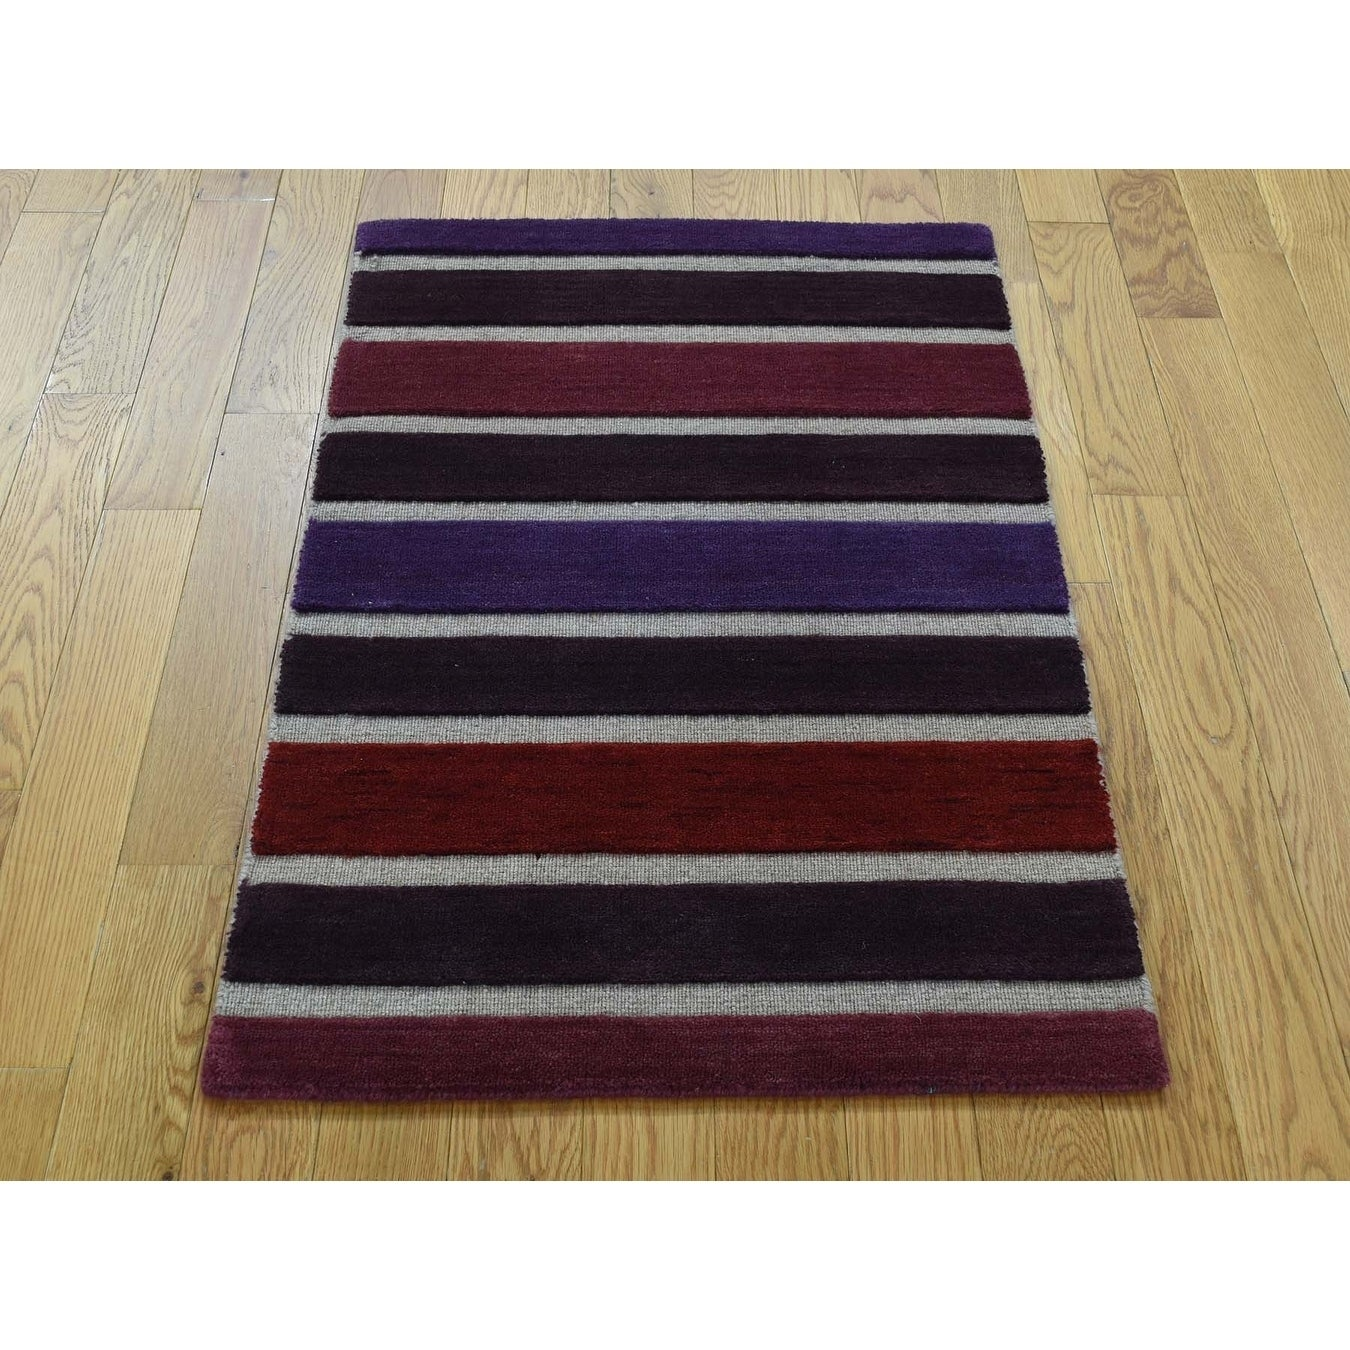 Hand Knotted Multicolored Hand-Loomed with Wool Oriental Rug - 2 x 3